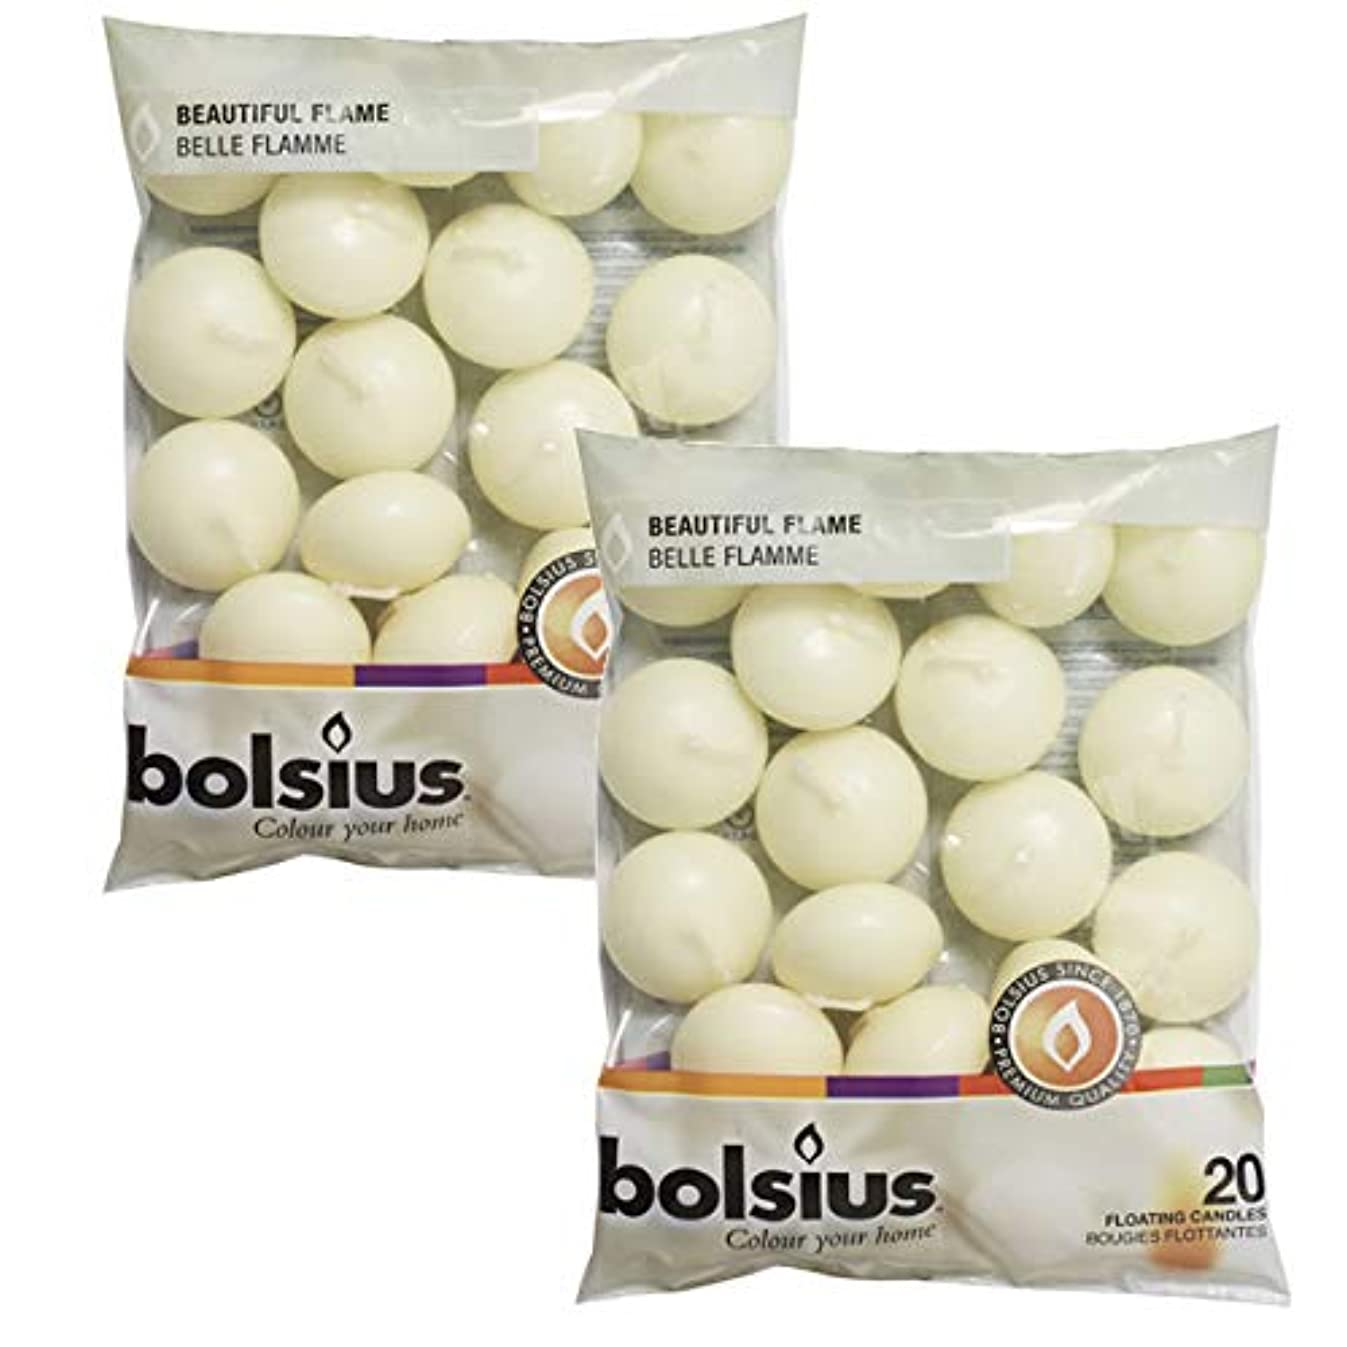 Bolsius Unscented Floating Candles – Set of 40 Ivory Floating Candles 1.3/4 inch – Elegant Burning Candles – Candles Nice Smooth Flame – Party Accessories